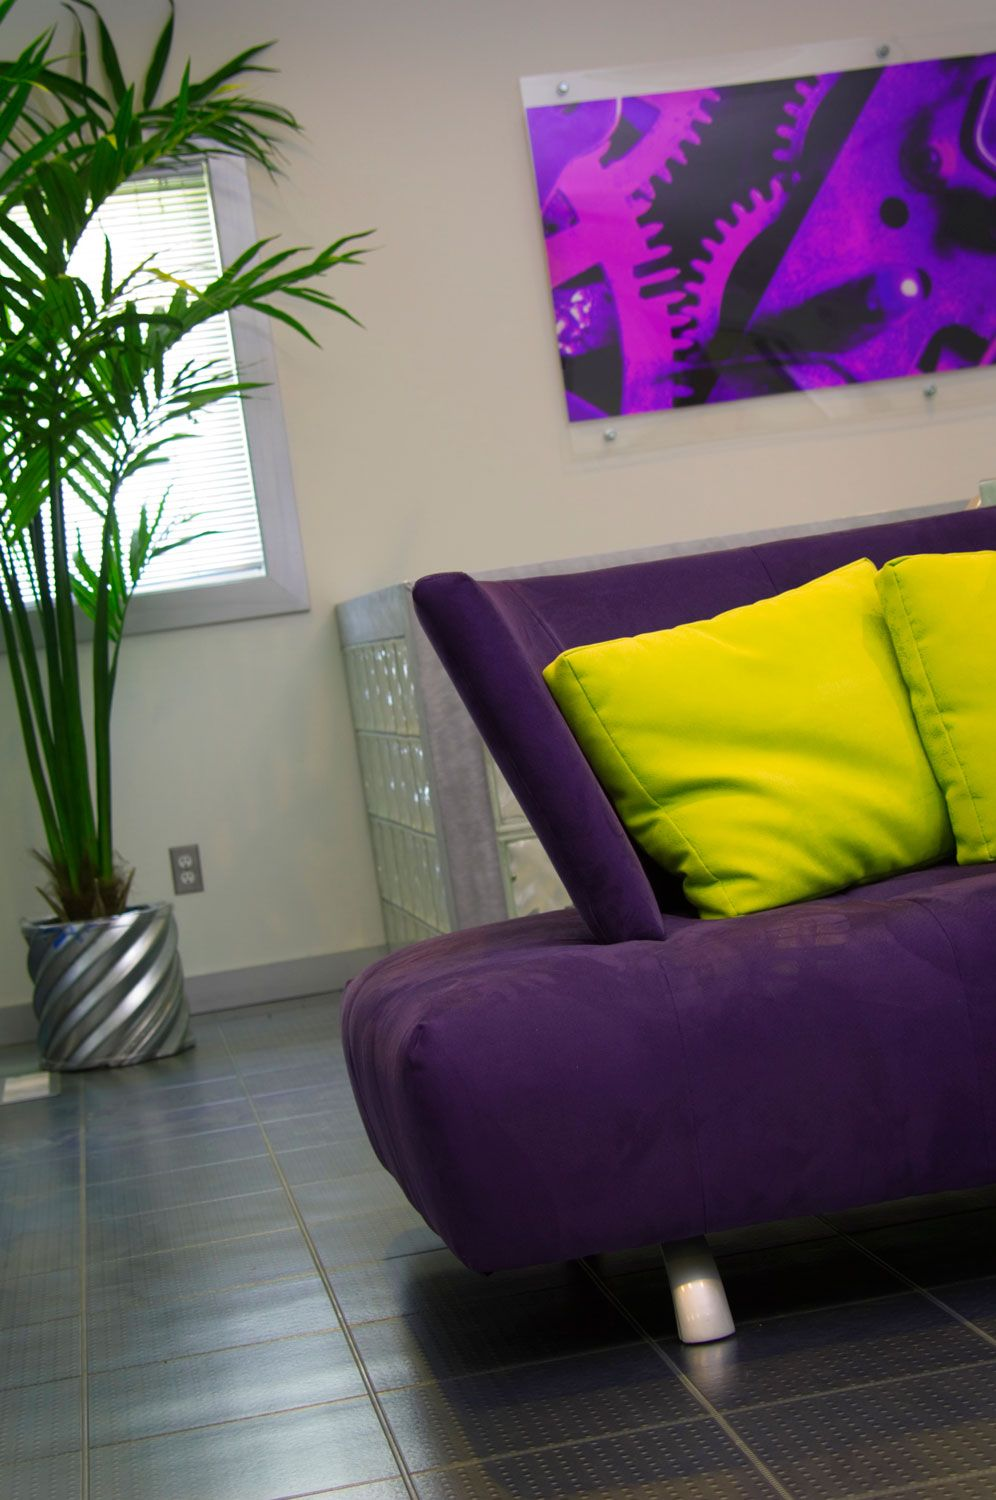 Ideas para combinar un sof morado o lila hogarmania - Combinar colores pared ...